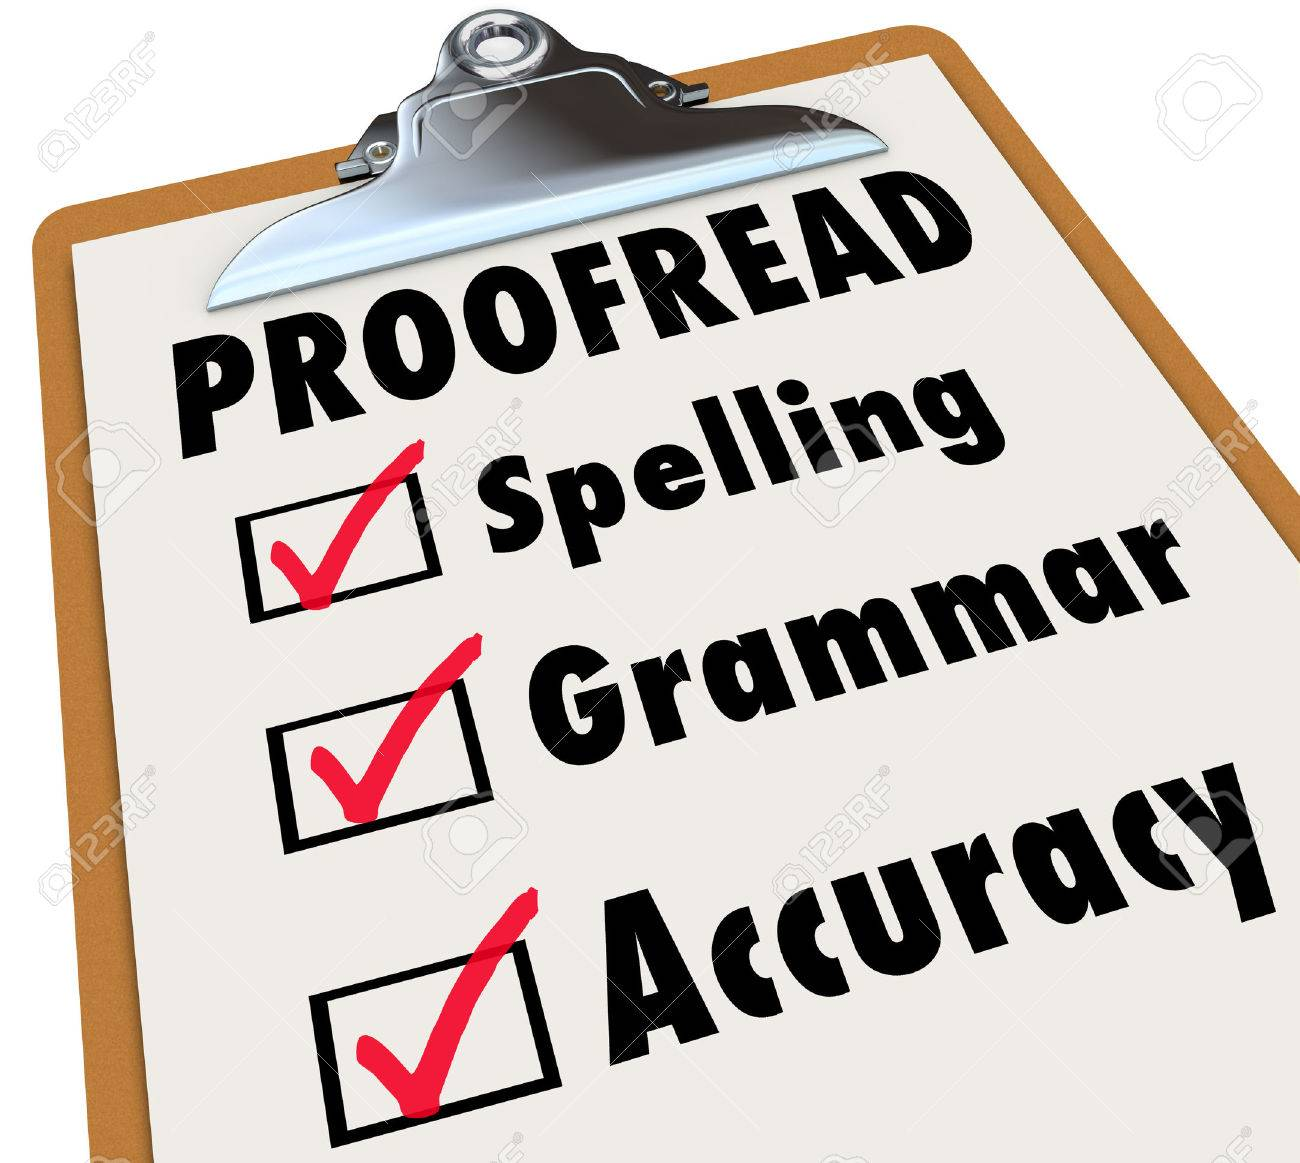 edit essays proofreading essay essay proofreading fast and proofreading essay essay proofreading fast and affordable proof essayproofreading images stock pictures royalty proofreading proofreading proof